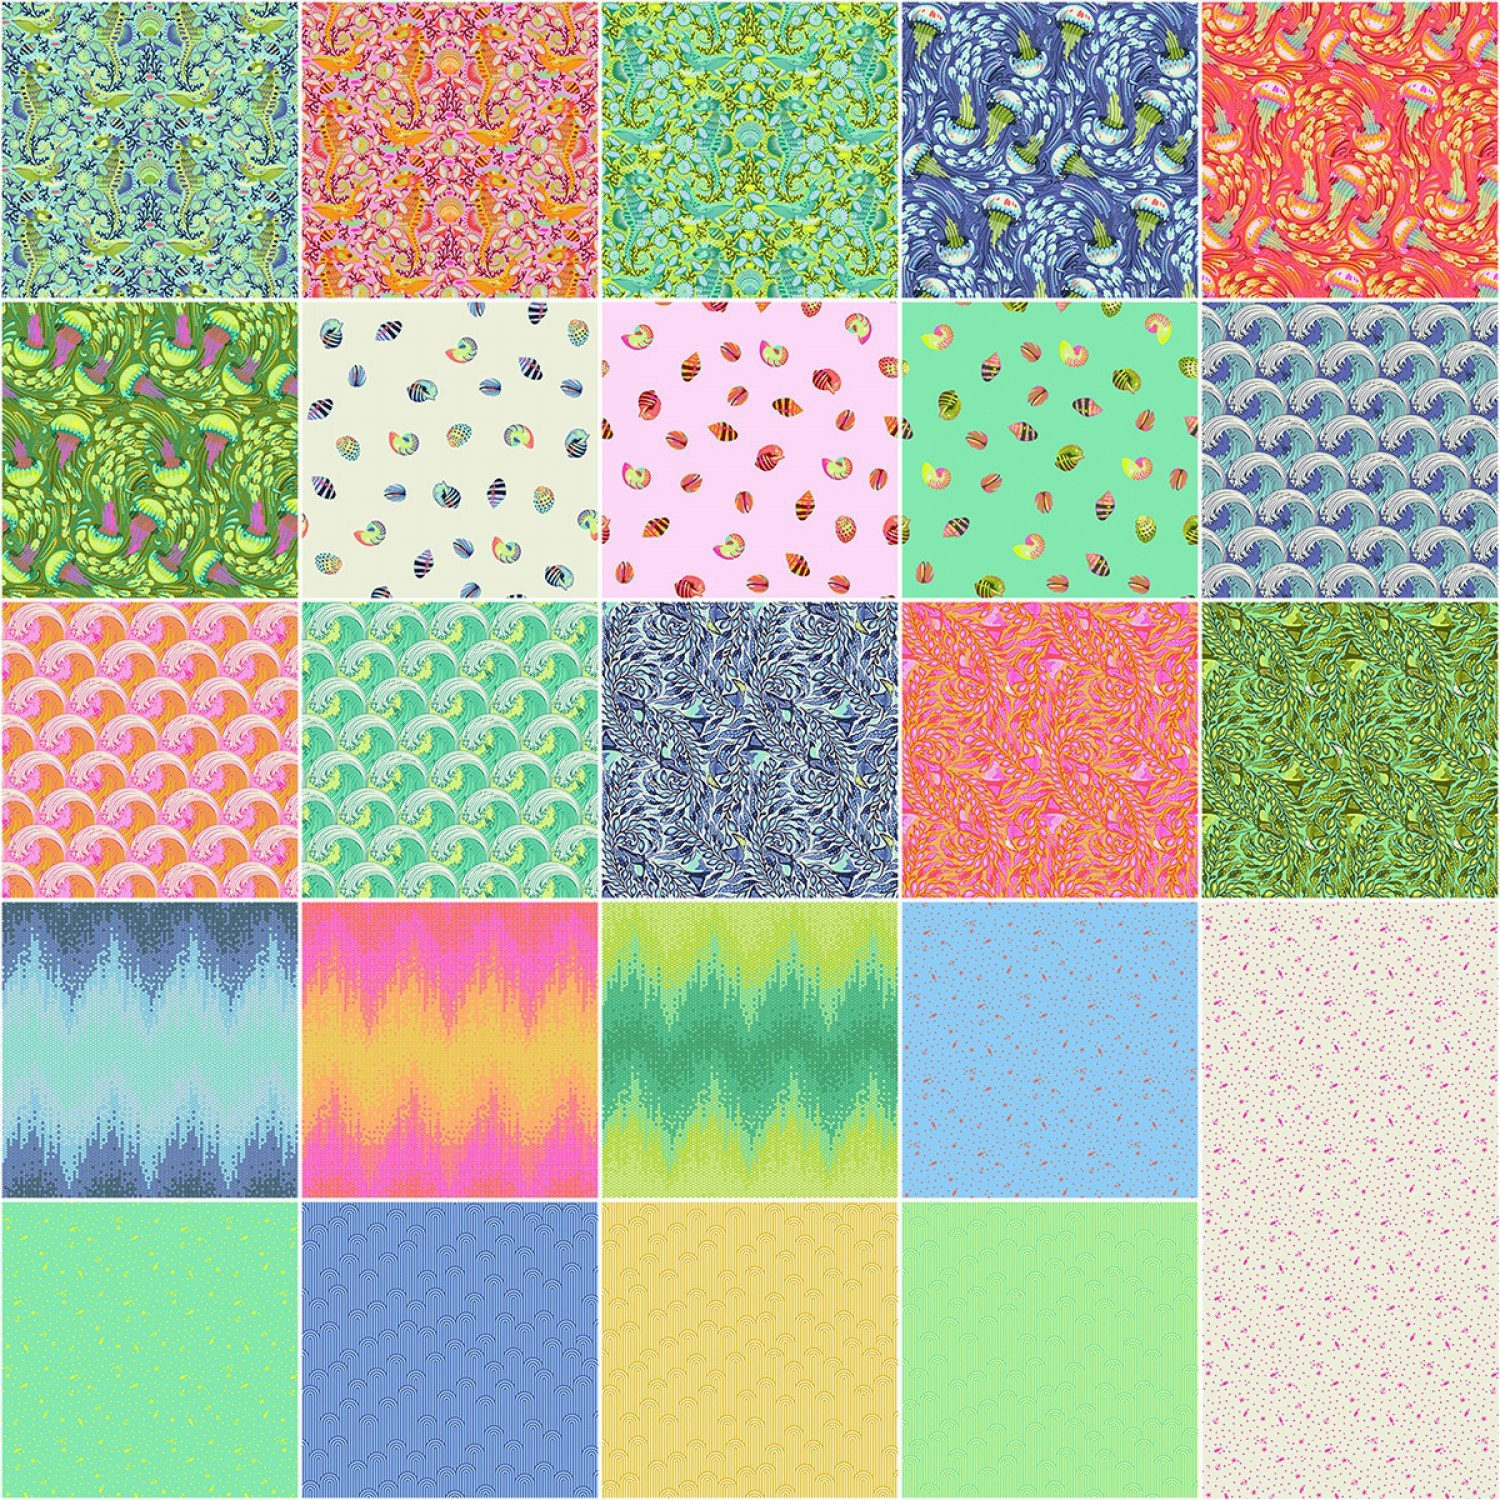 Zuma 24 1/2 yard bundle Tula Pink